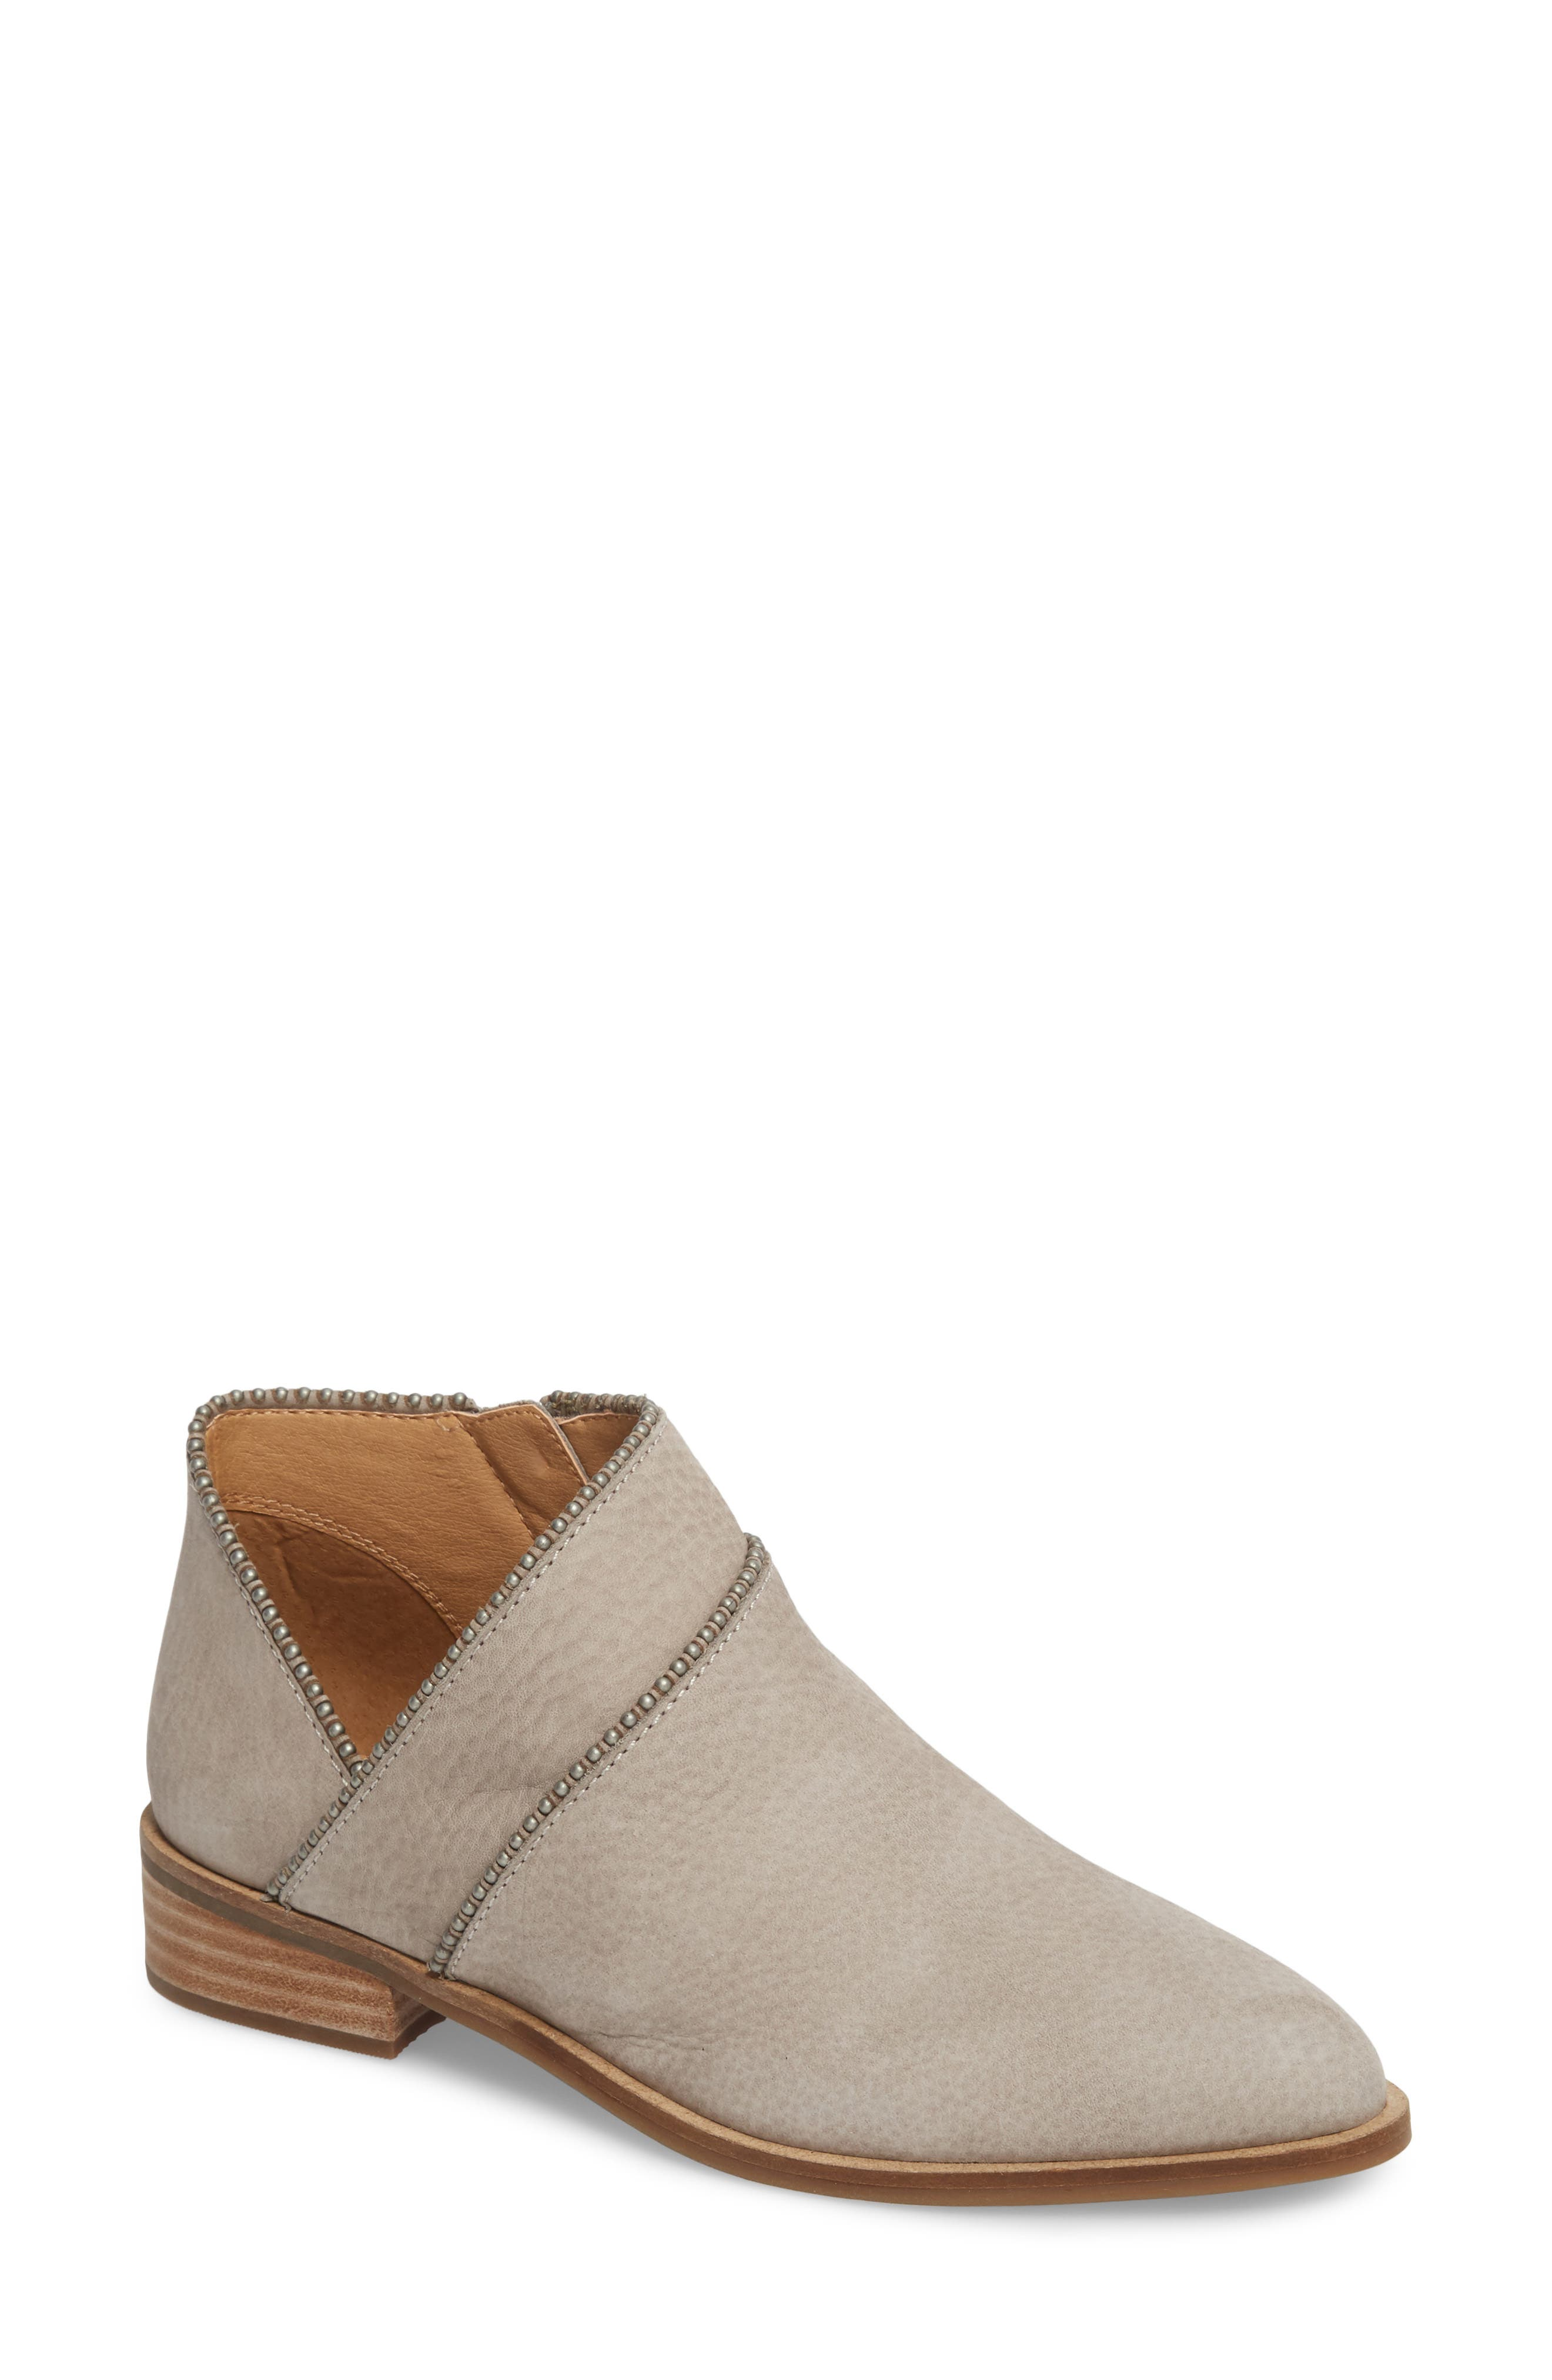 LUCKY BRAND,                             Perrma Bootie,                             Main thumbnail 1, color,                             060